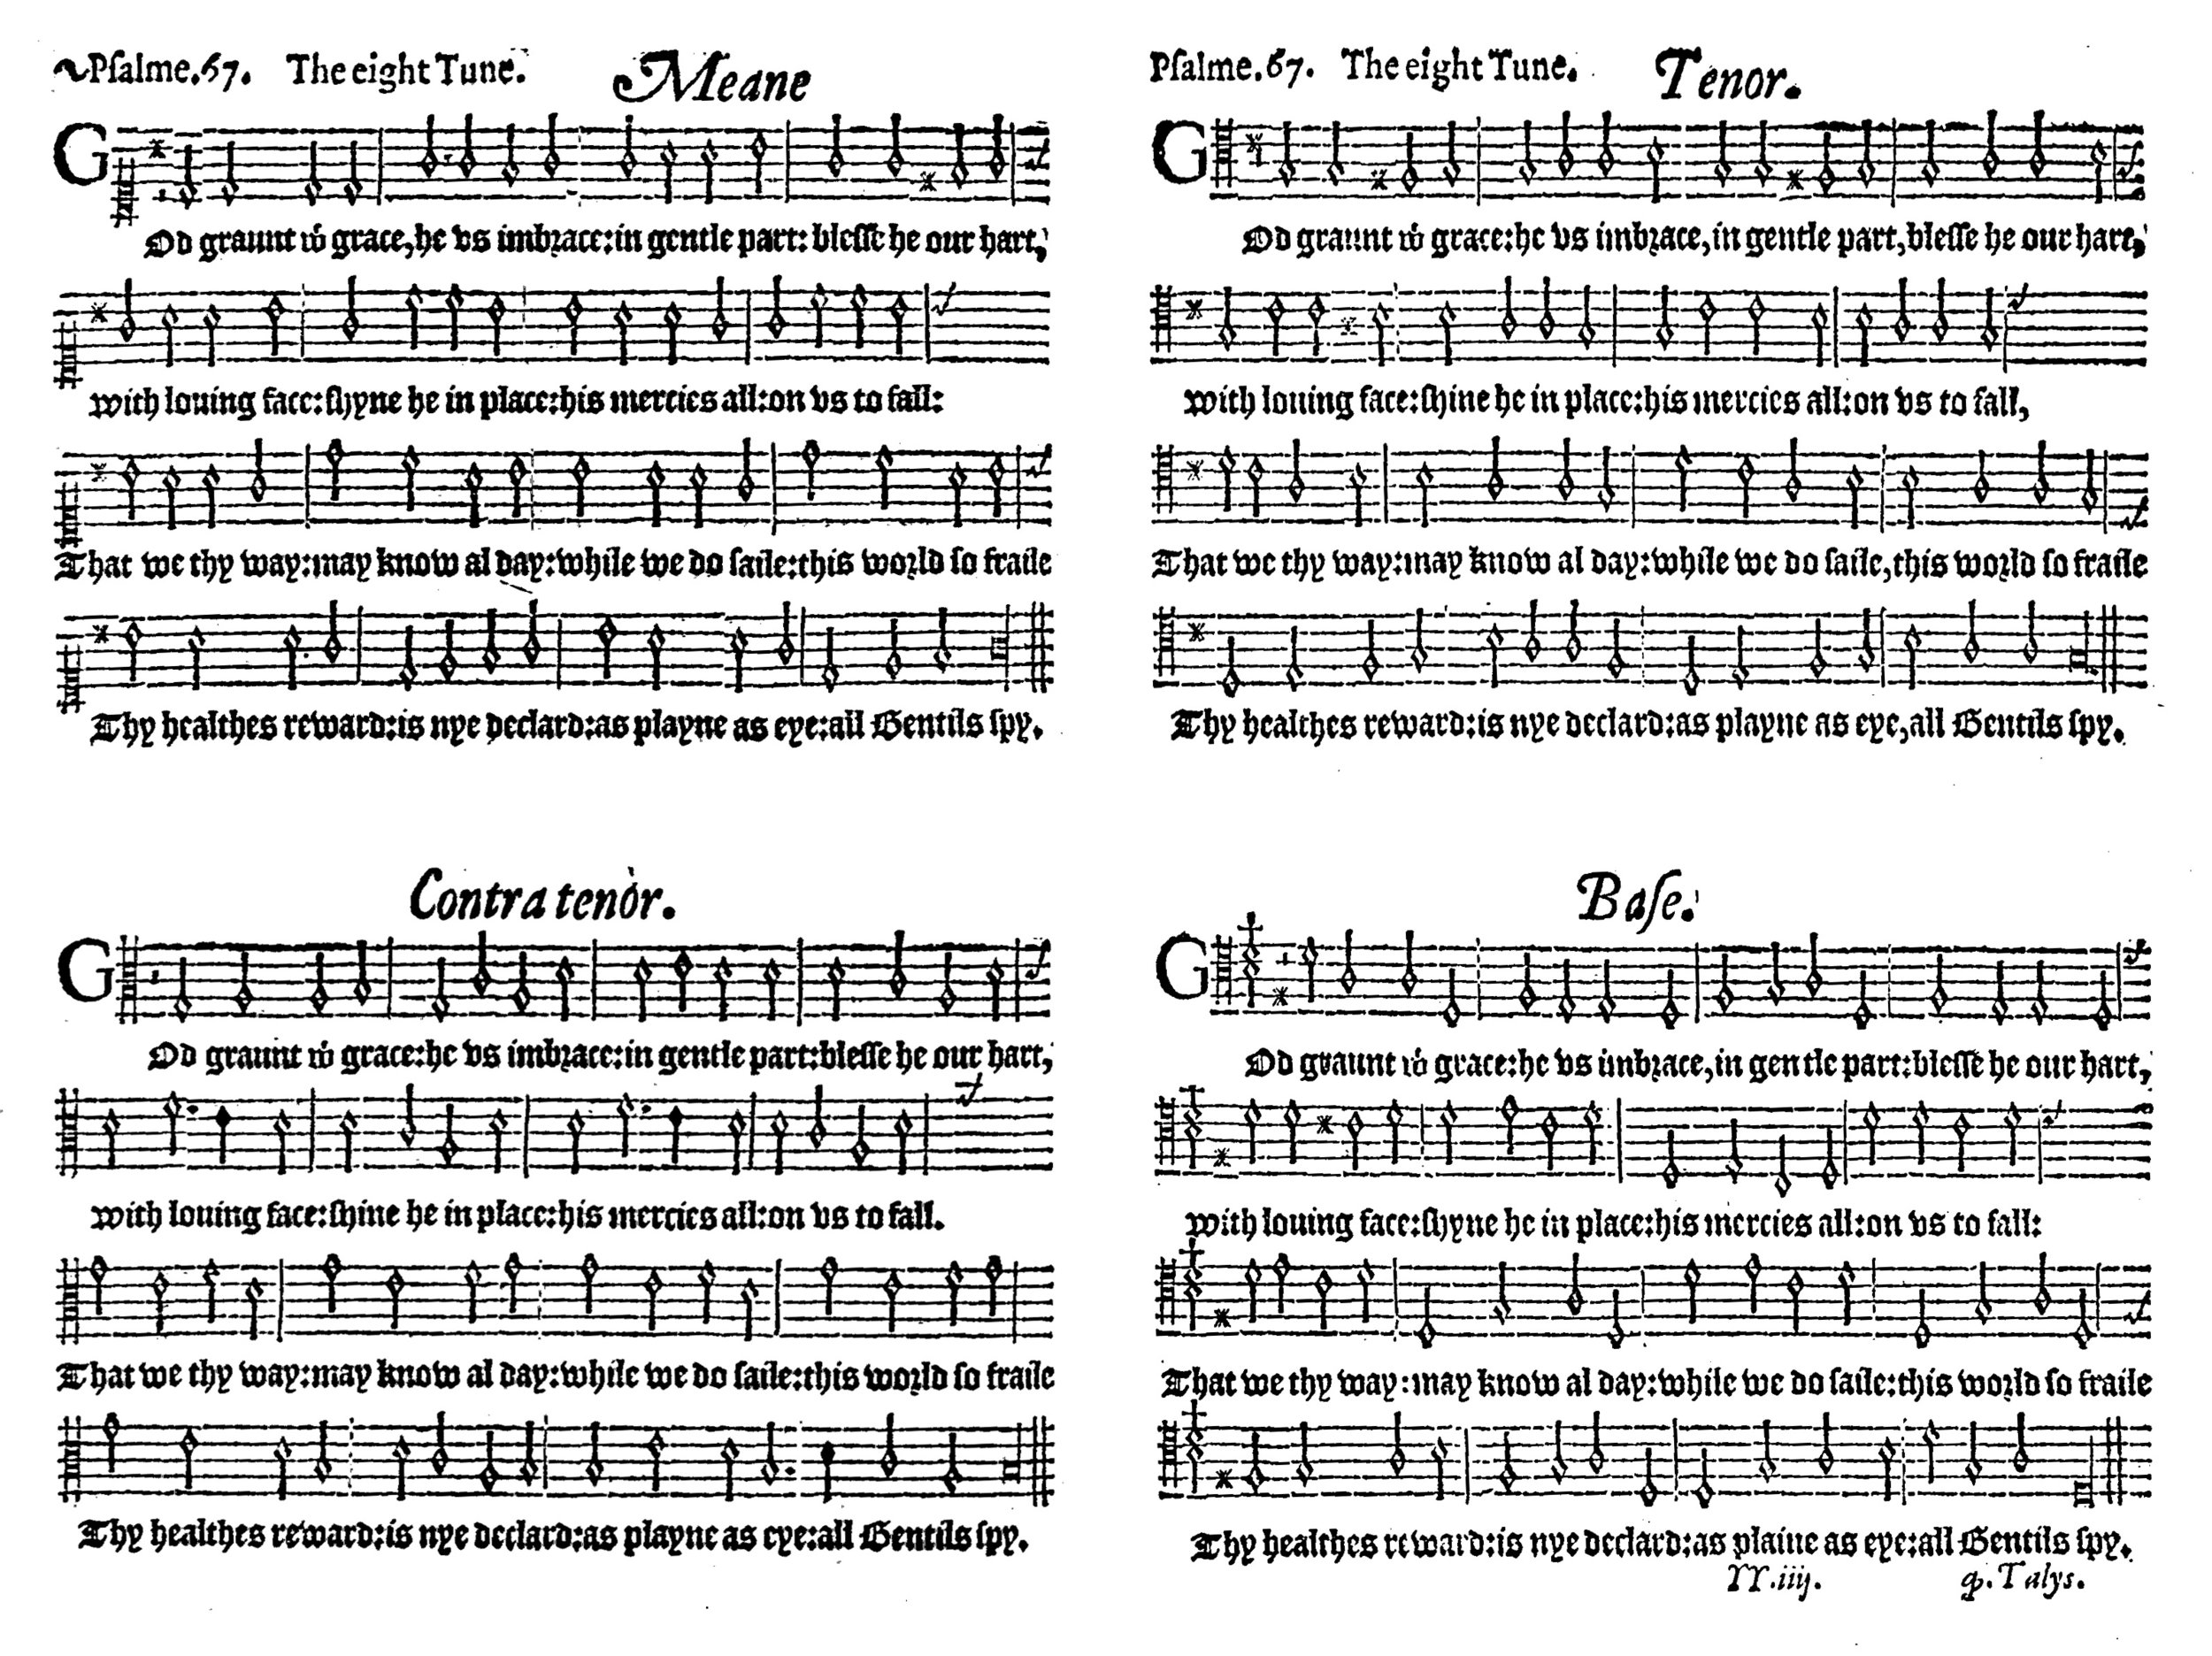 Fig. 8.   The Whole Psalter Translated into English Metre  (London: John Daye, ca. 1567). Melody in the tenor part.